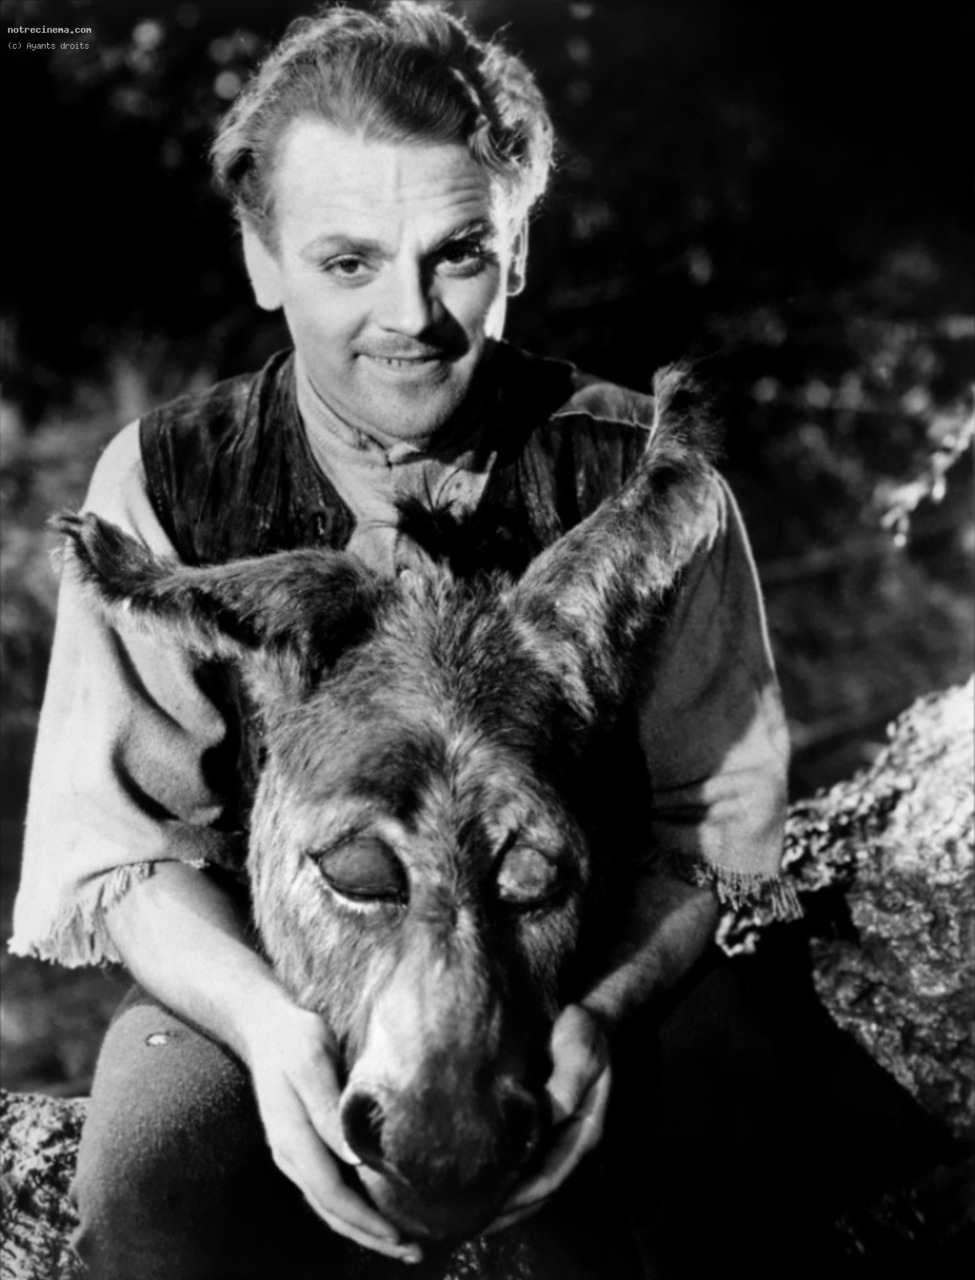 james cagney blogathon max reinhardt s a midsummer night s dream james cagney blogathon max reinhardt s a midsummer night s dream